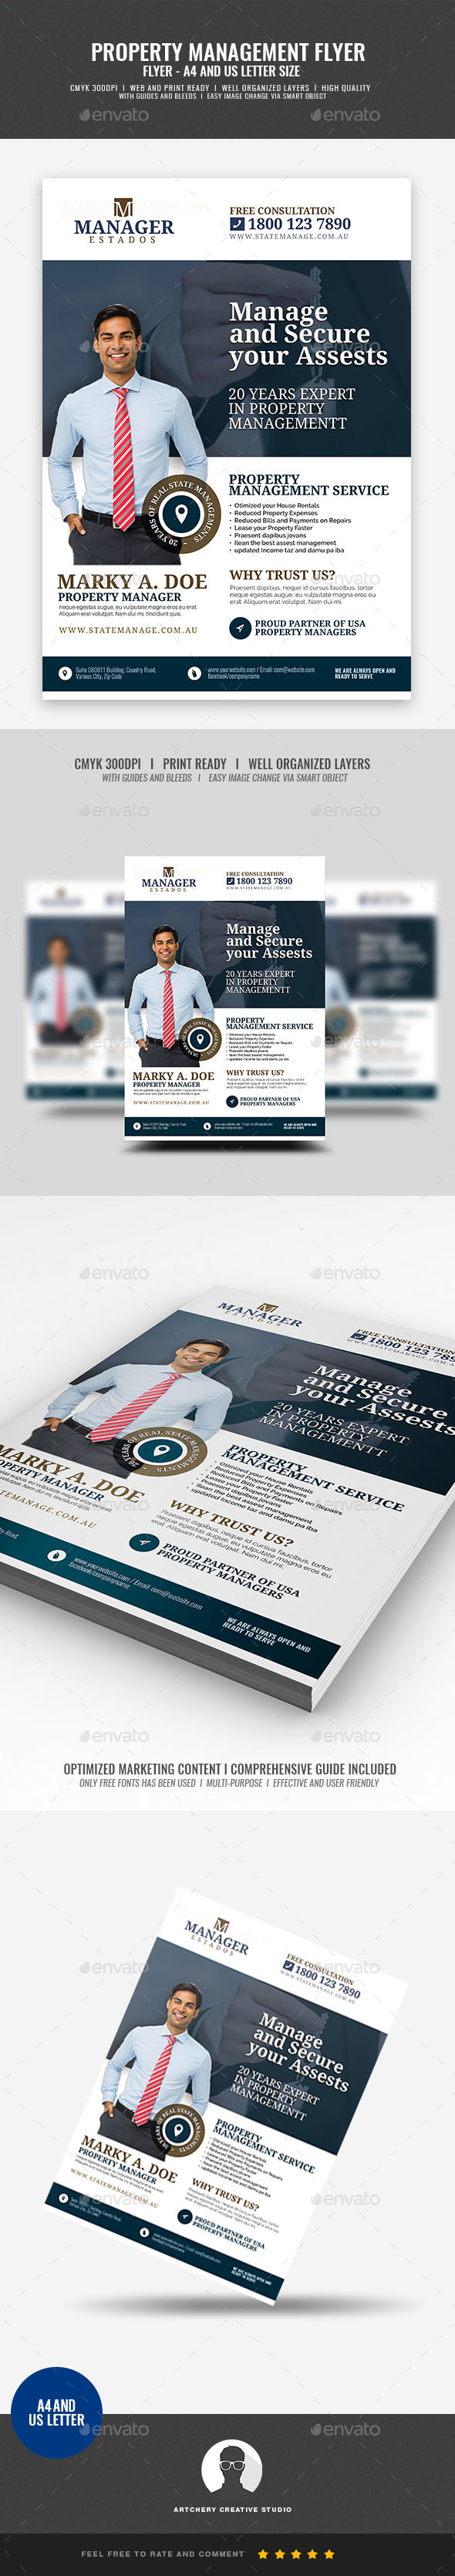 Property Management and Real Estate Flyer - Corporate Flyers